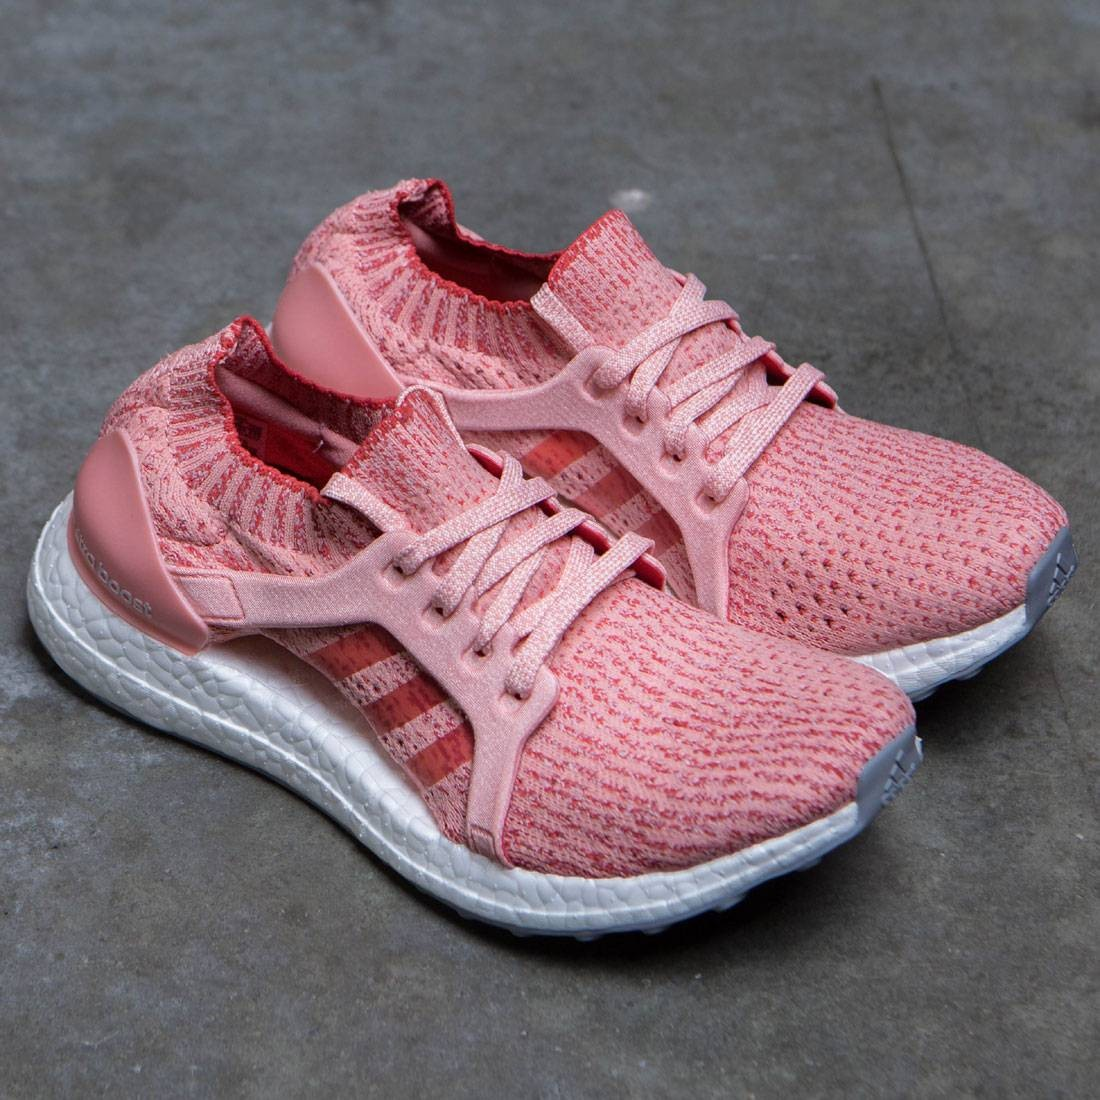 7cfb34e36 Adidas Women UltraBOOST X (pink   trace pink   tactile red)